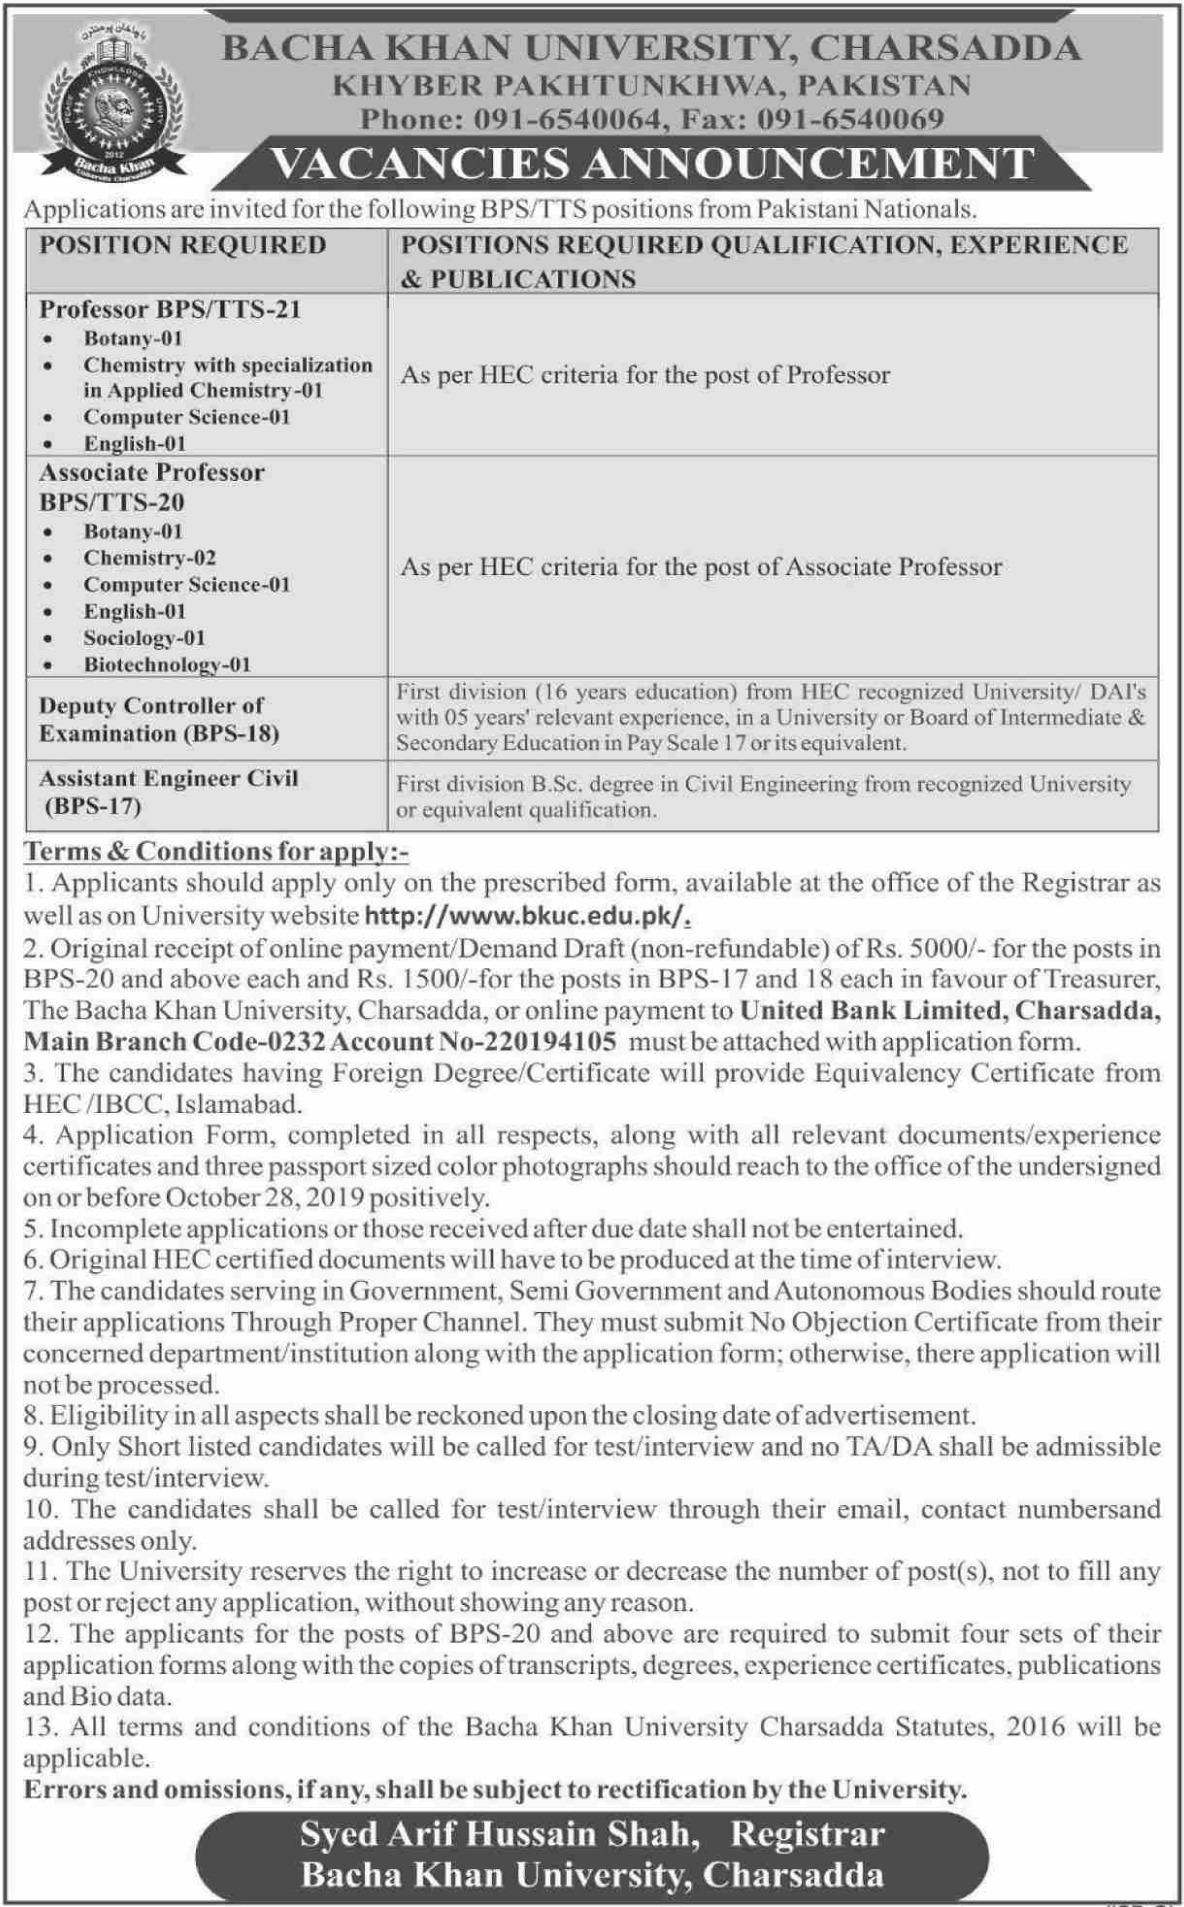 BKUC Jobs 2019 Bacha Khan University Charsadda